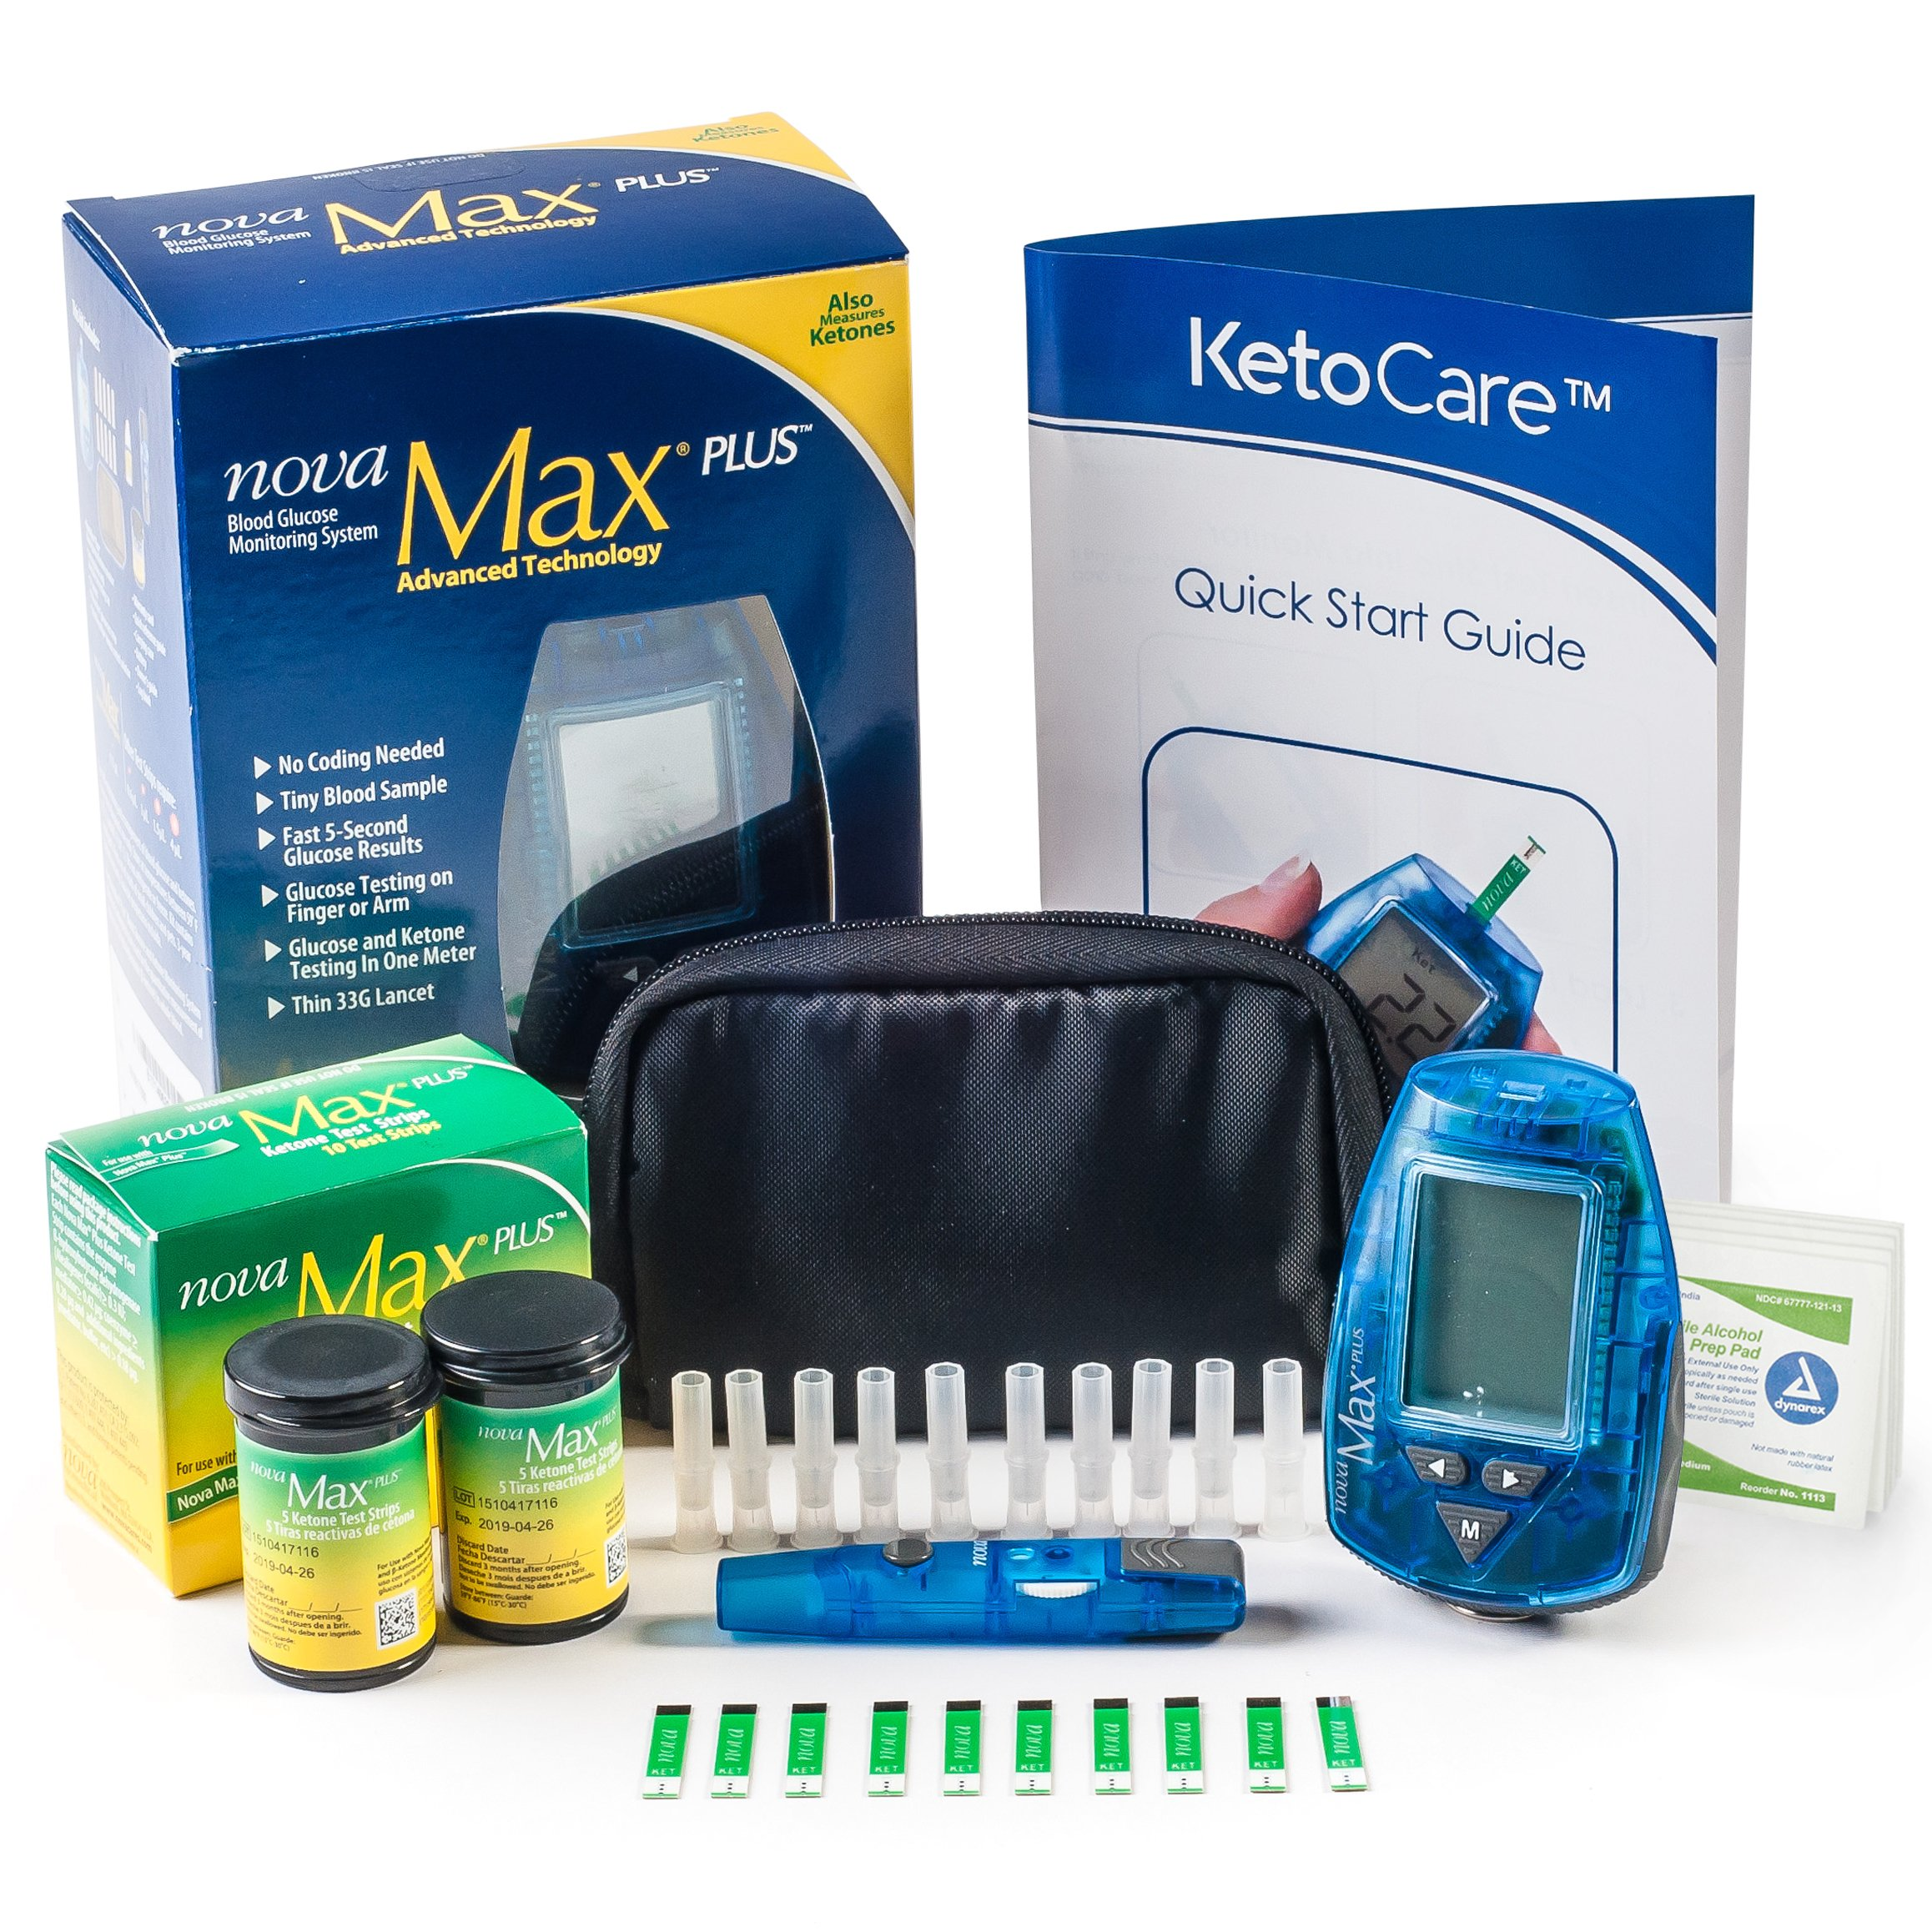 Ketocare Blood Ketone Meter & Monitoring System - Includes Everything Needed for Ketosis Testing & Ketogenic Diet Tracking (Strips are not Compatible with The Precision Xtra Blood Ketone Meter) by Ketocare